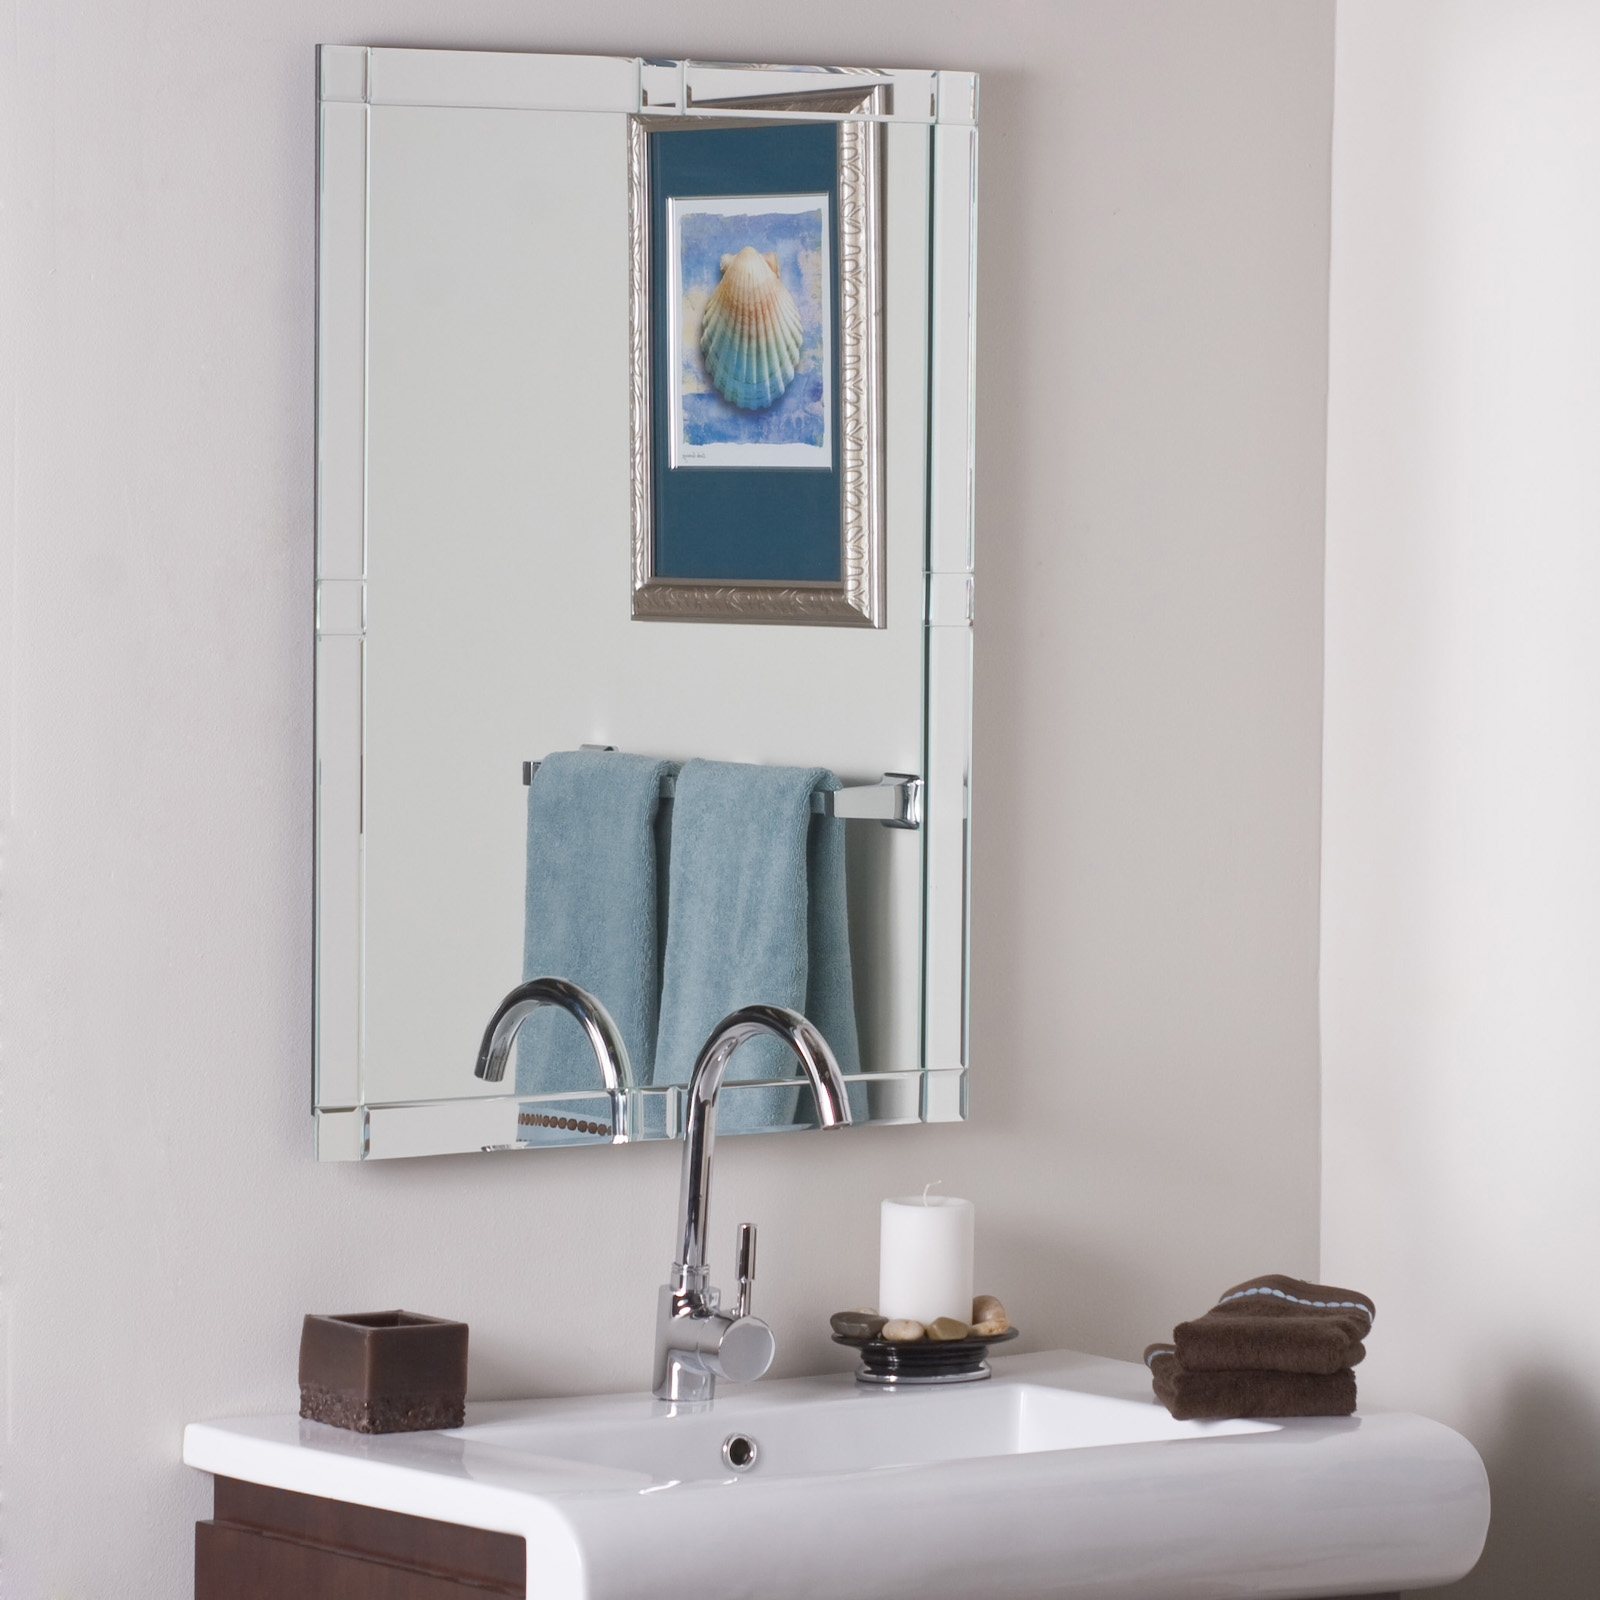 Versatility Frameless Bathroom Mirror Accessory Inspiration Home Inside Large Bevelled Edge Mirror (Image 14 of 15)